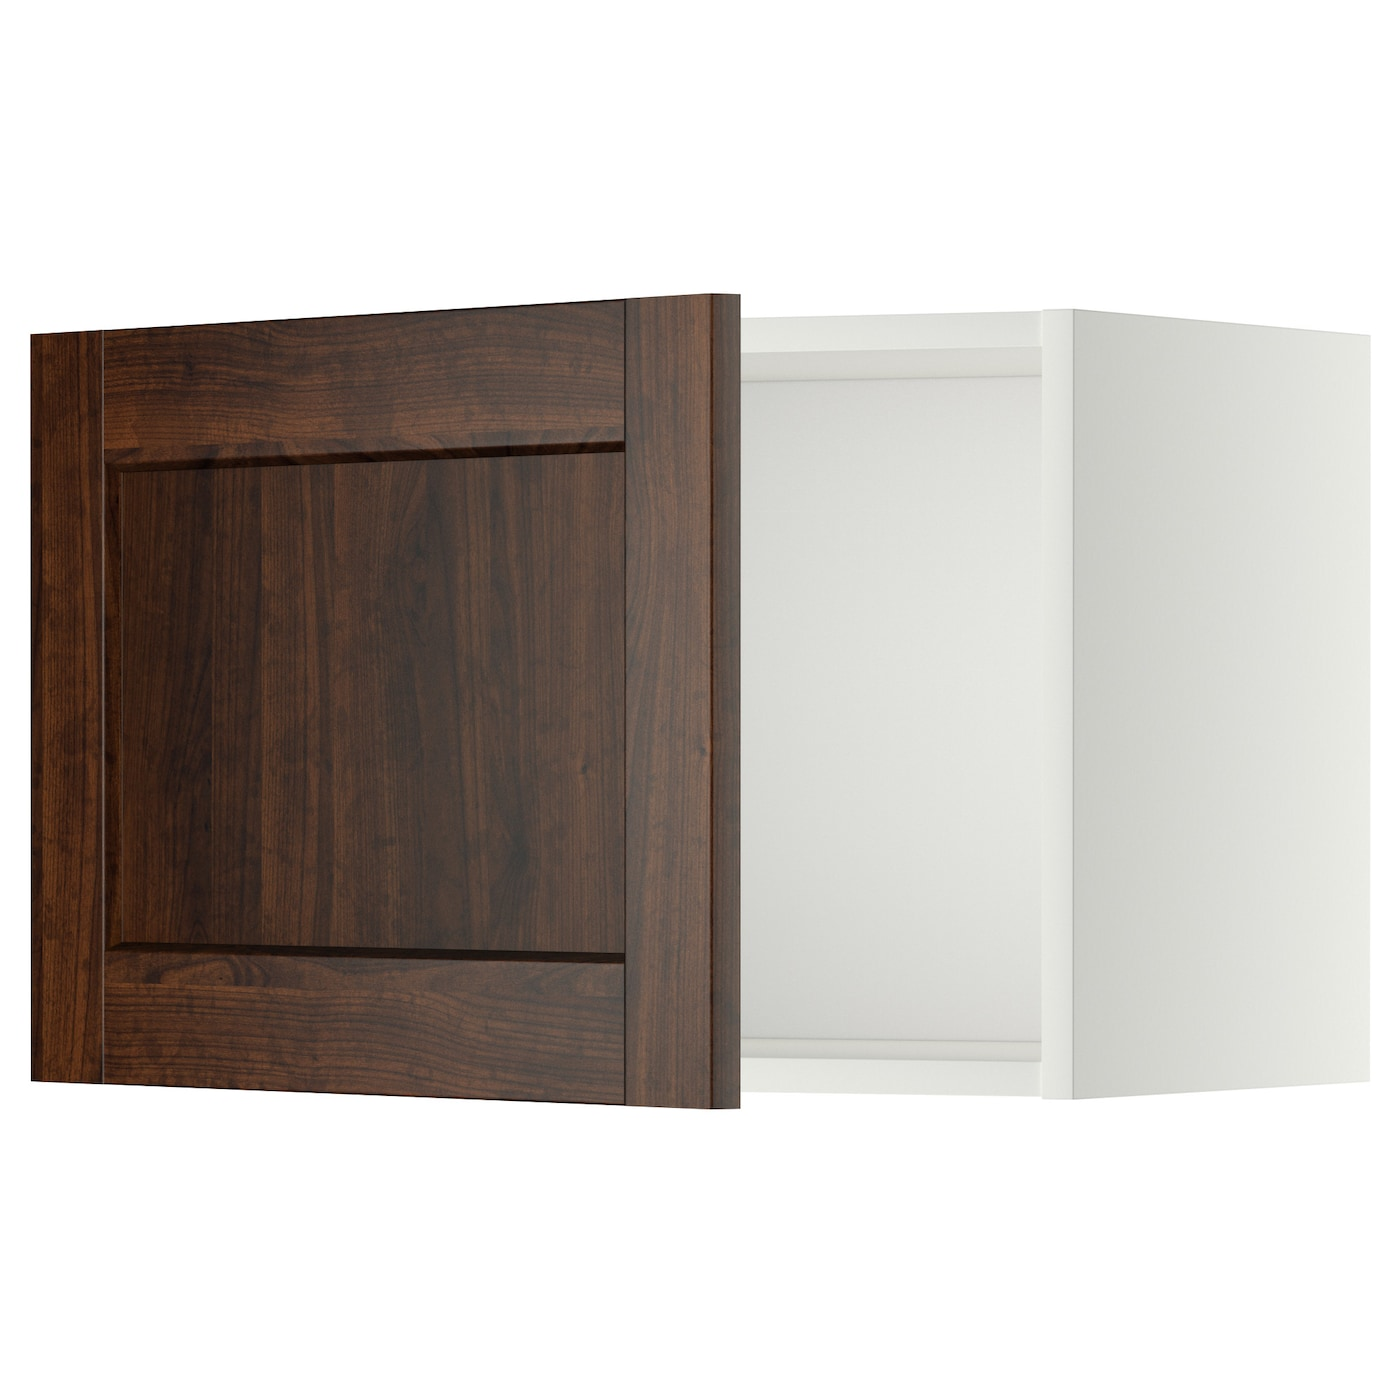 Ikea Kitchen Wall Storage: METOD Wall Cabinet White/edserum Brown 60x40 Cm